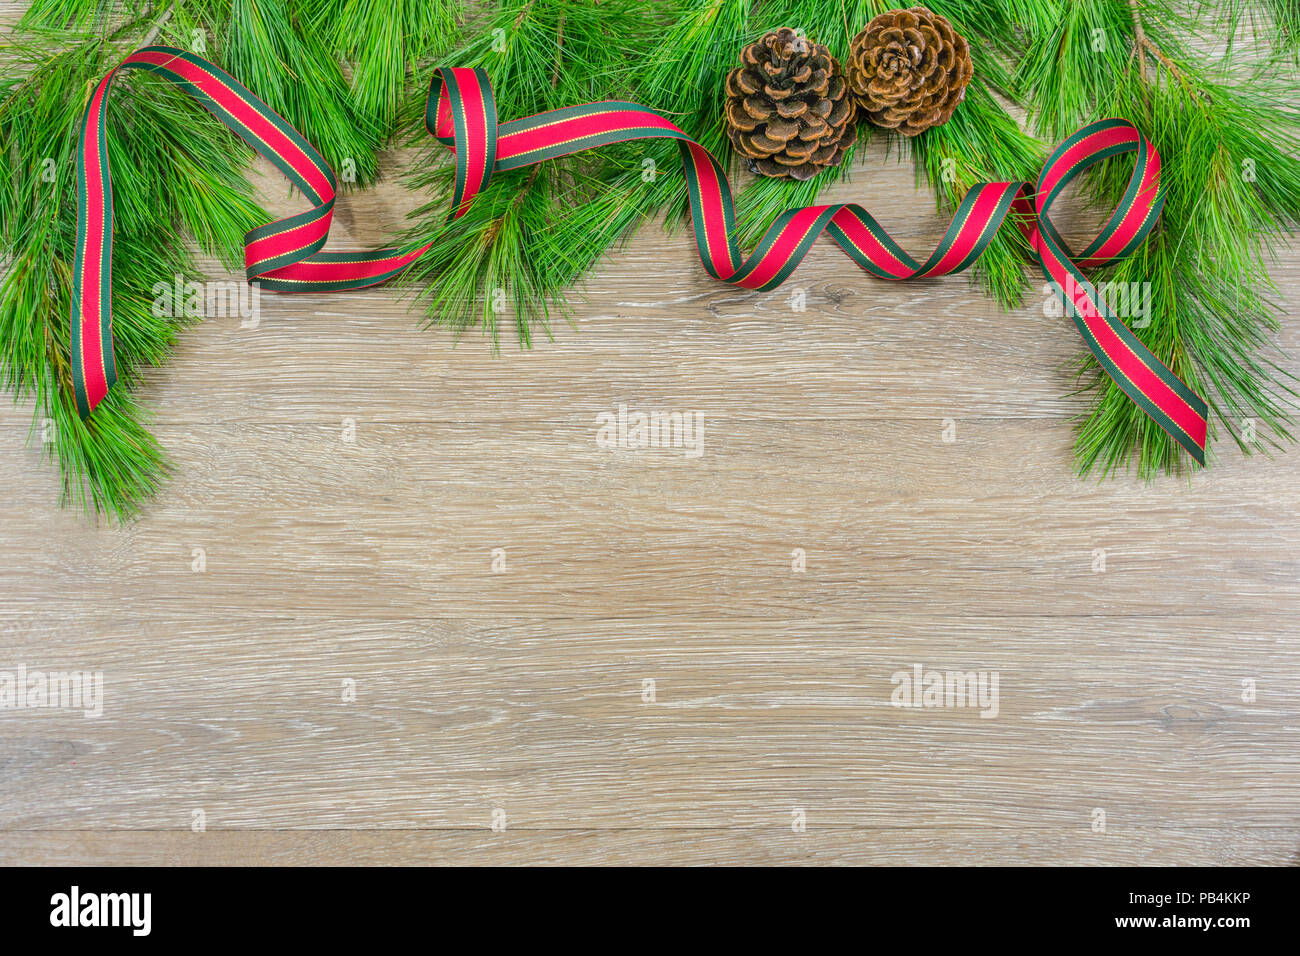 Scotch Pine Christmas Tree Stock Photos & Scotch Pine Christmas Tree ...